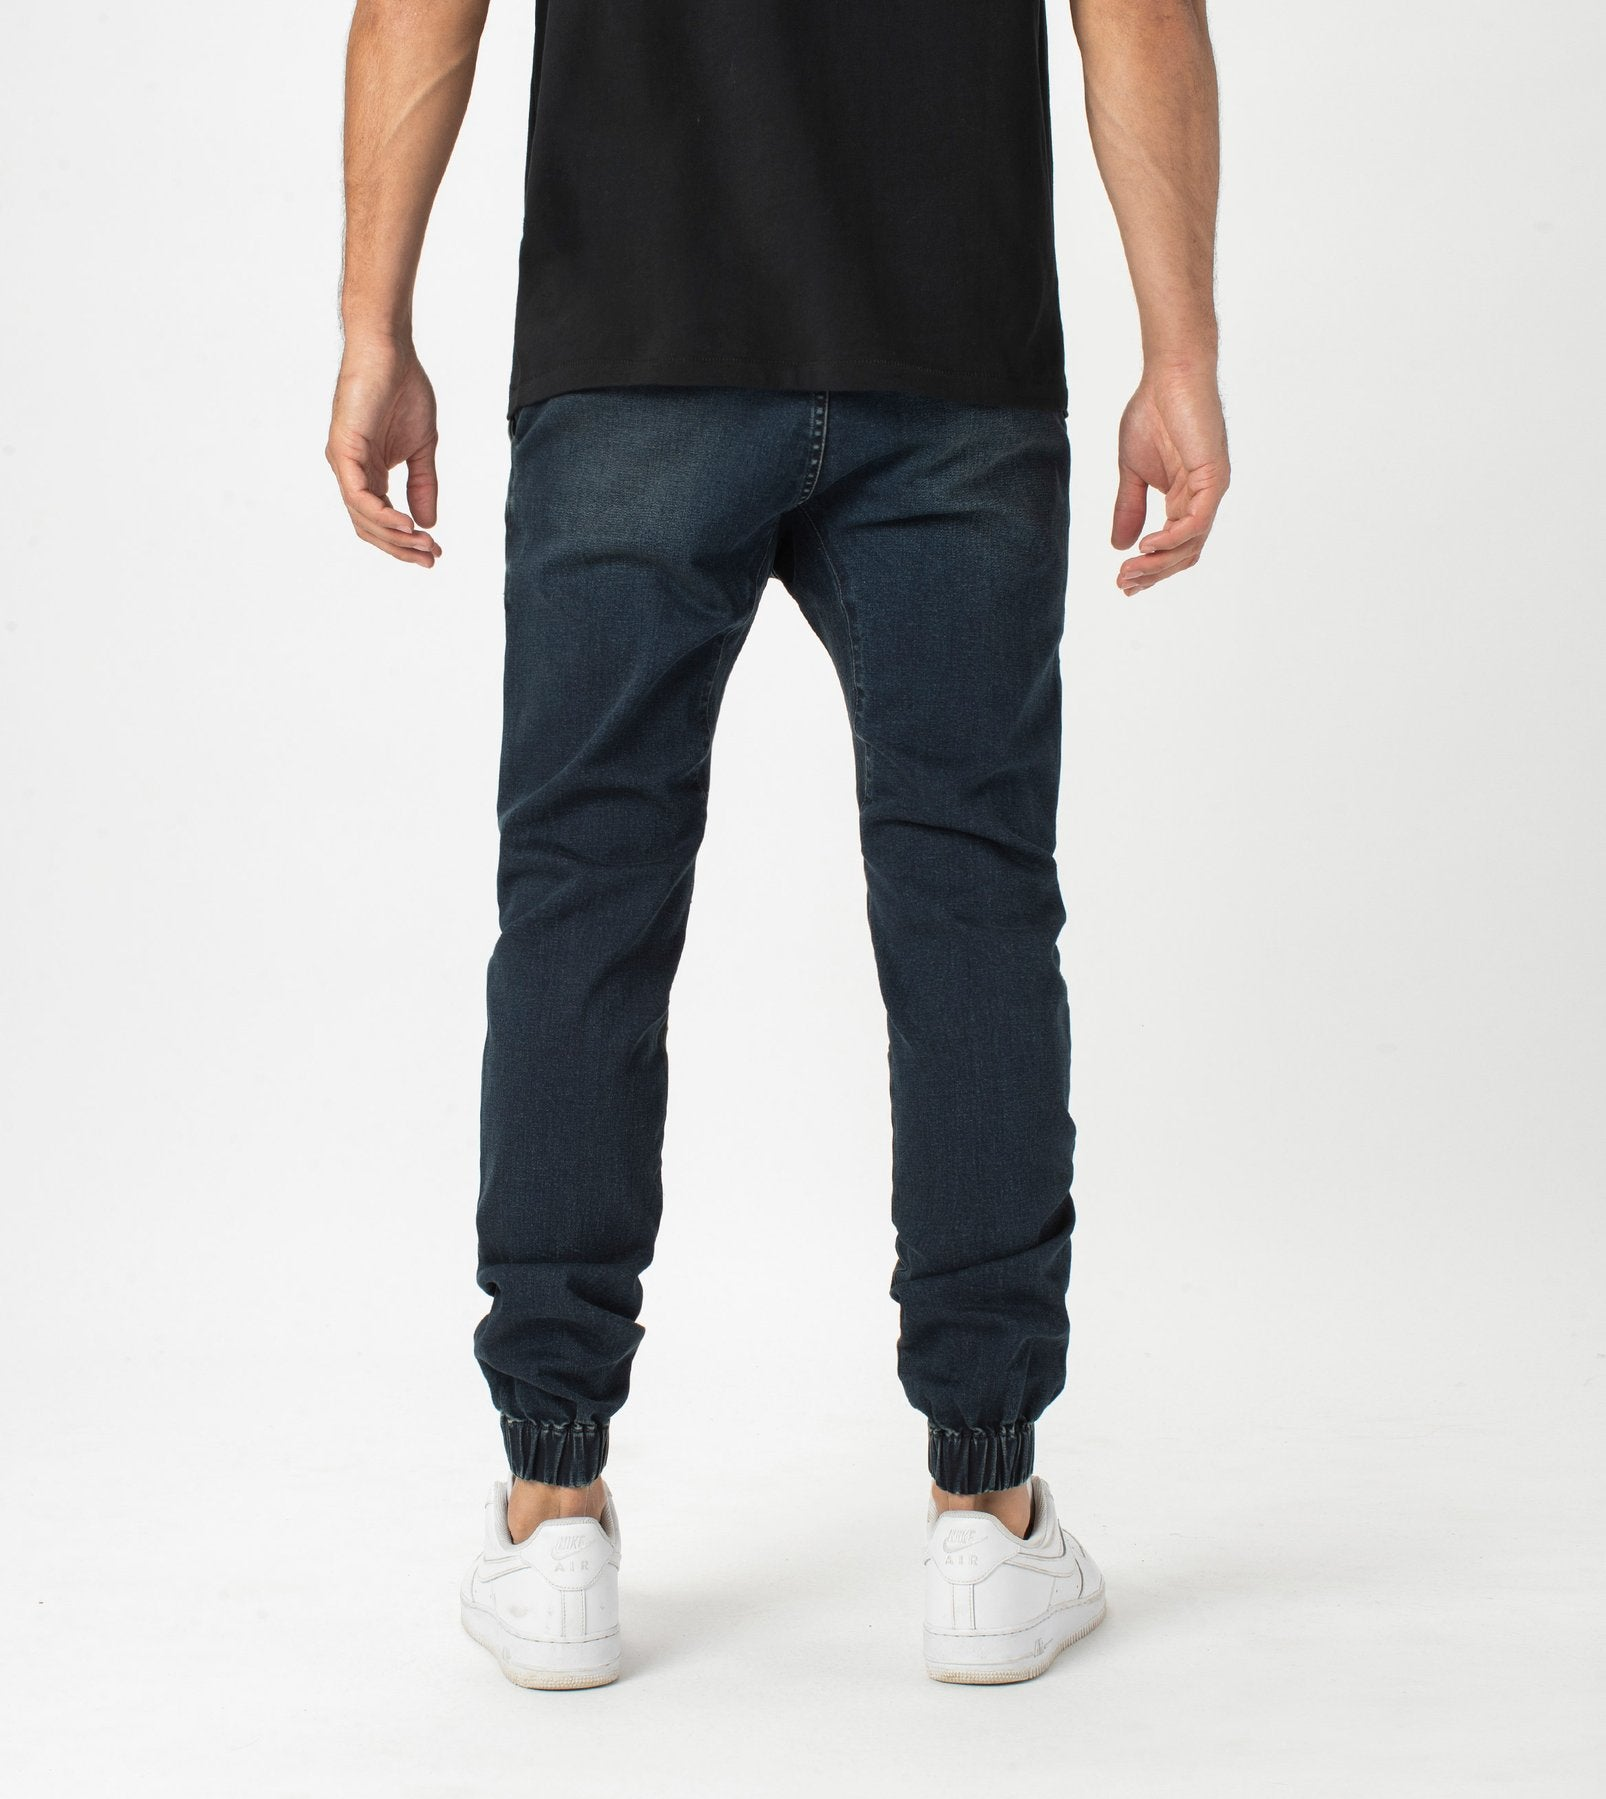 ZANEROBE M'S PANTS SURESHOT DENIM JOGGER DEEP SEA